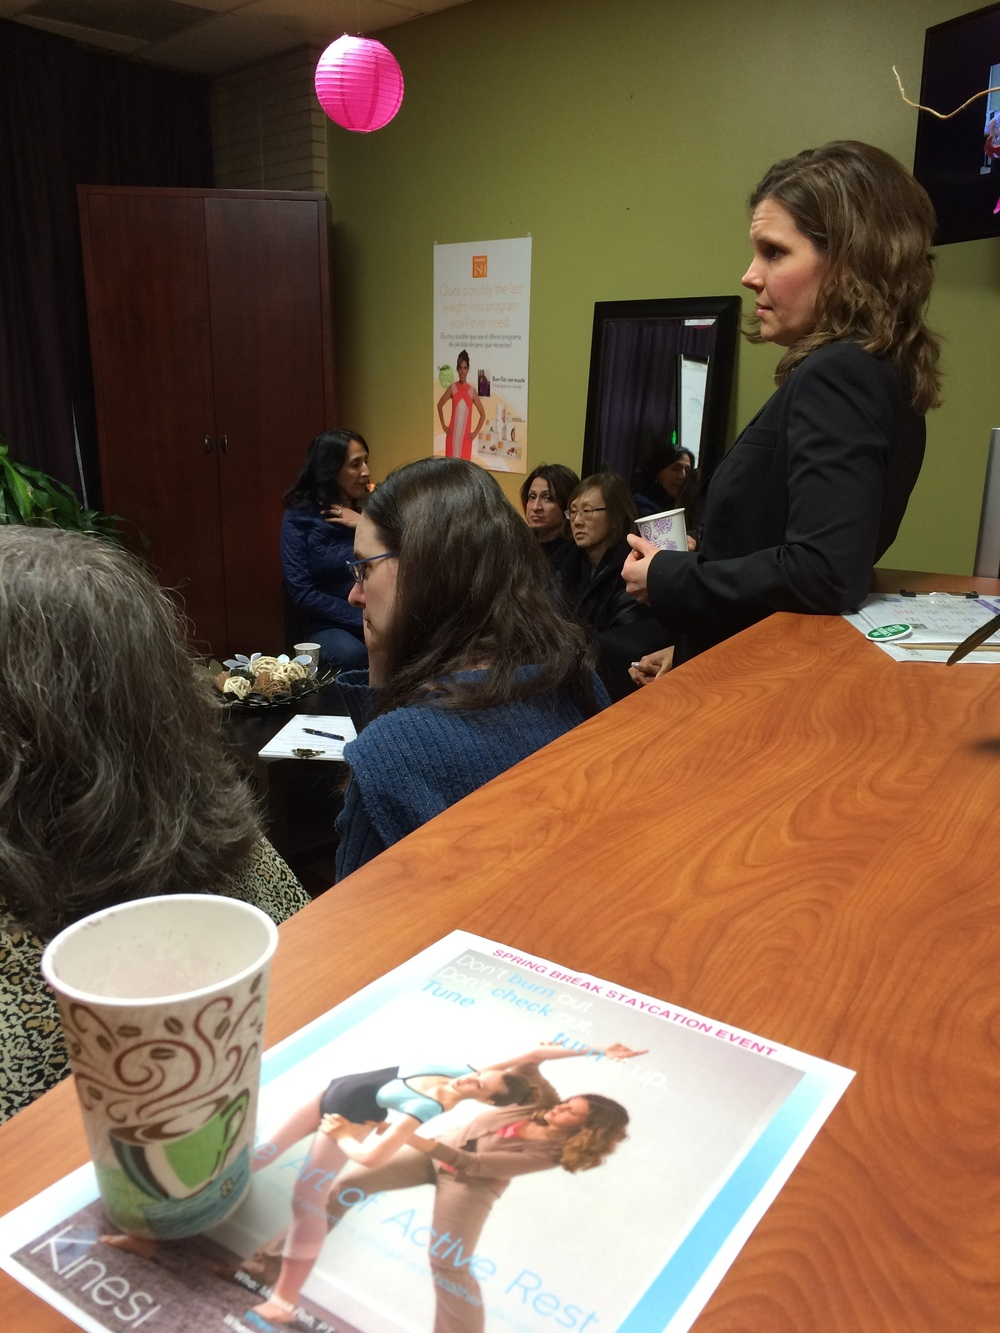 """Left and Above: Melissa Reh, PT, presenting """"Living an Active and Healthy Life (Without Pain)"""" at Women, Wine, and Wellness Event March 4, 2016,Orinoco Fitness in Libertyville, IL."""